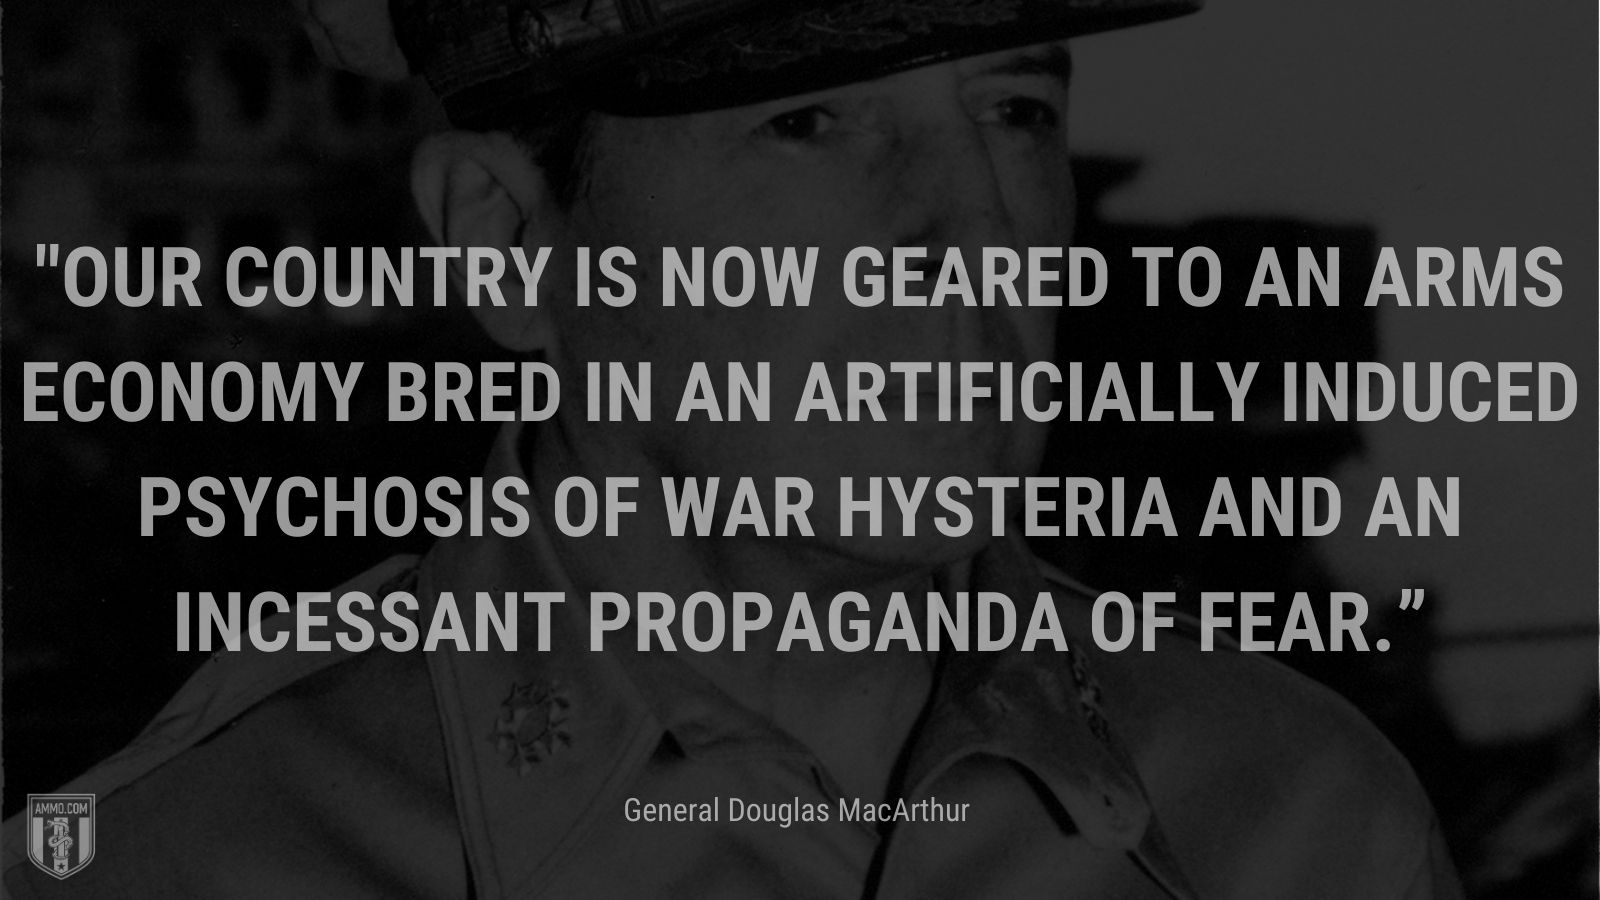 """""""Our country is now geared to an arms economy bred in an artificially induced psychosis of war hysteria and an incessant propaganda of fear."""" - General Douglas MacArthur"""